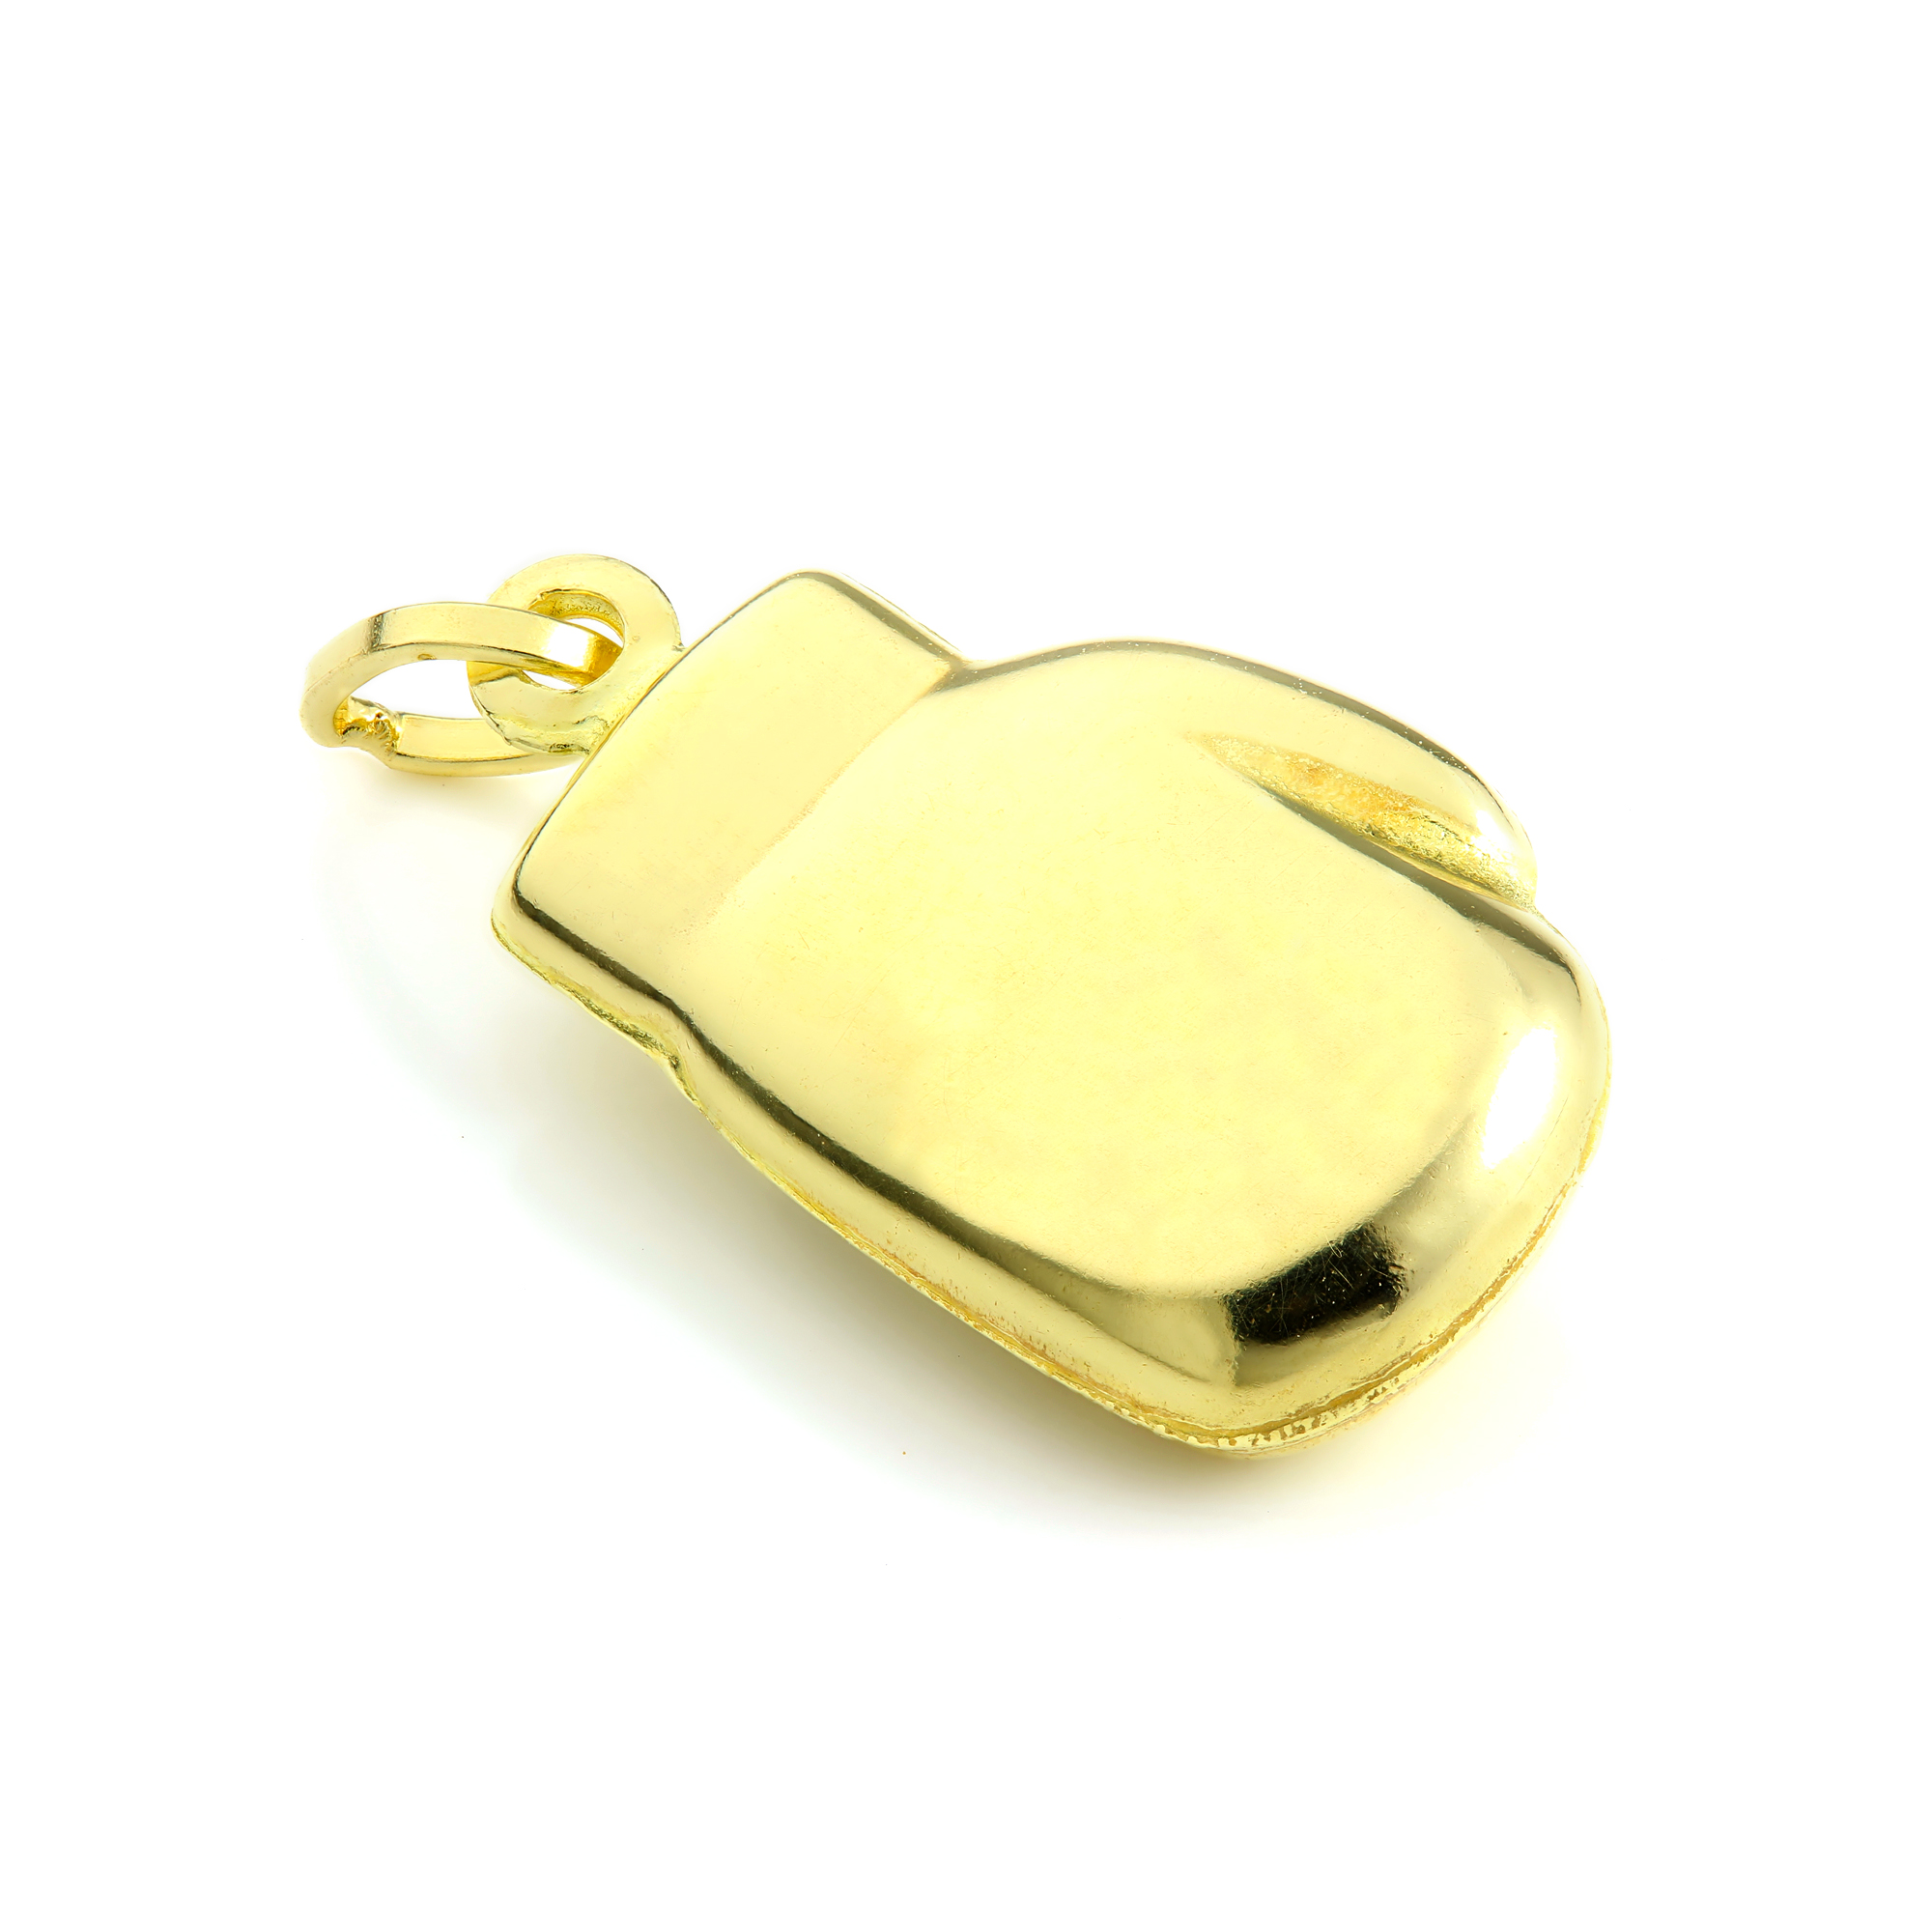 An image of 9ct Gold Hollow Boxing Glove Charm